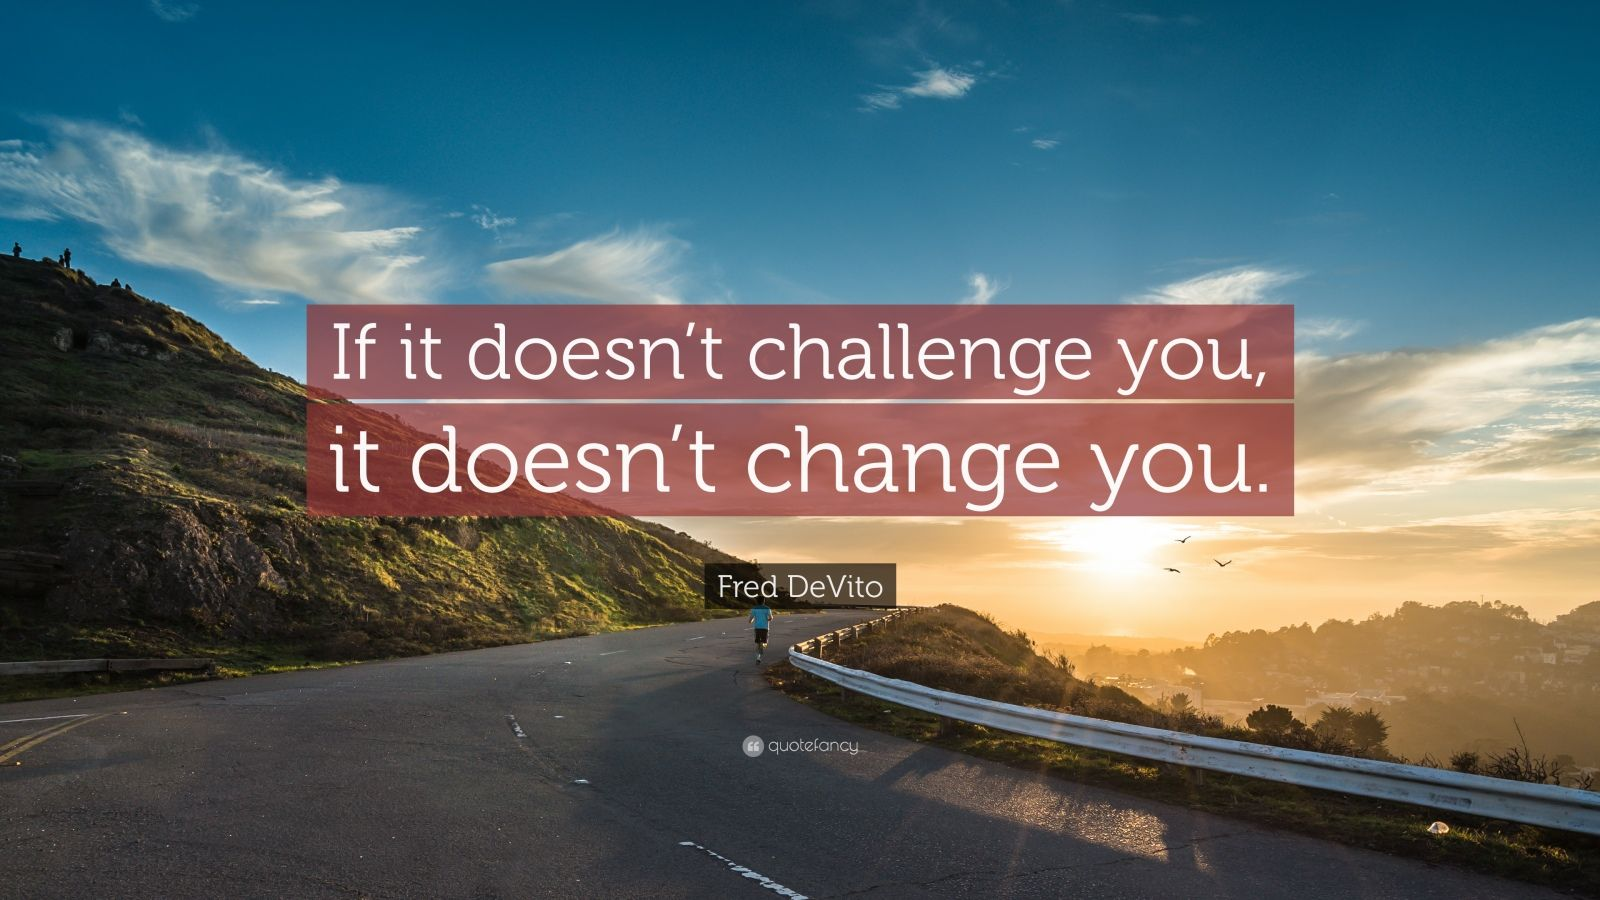 "Motivational Workout Quotes: ""If it doesn't challenge you, it doesn't change you."" — Fred DeVito"